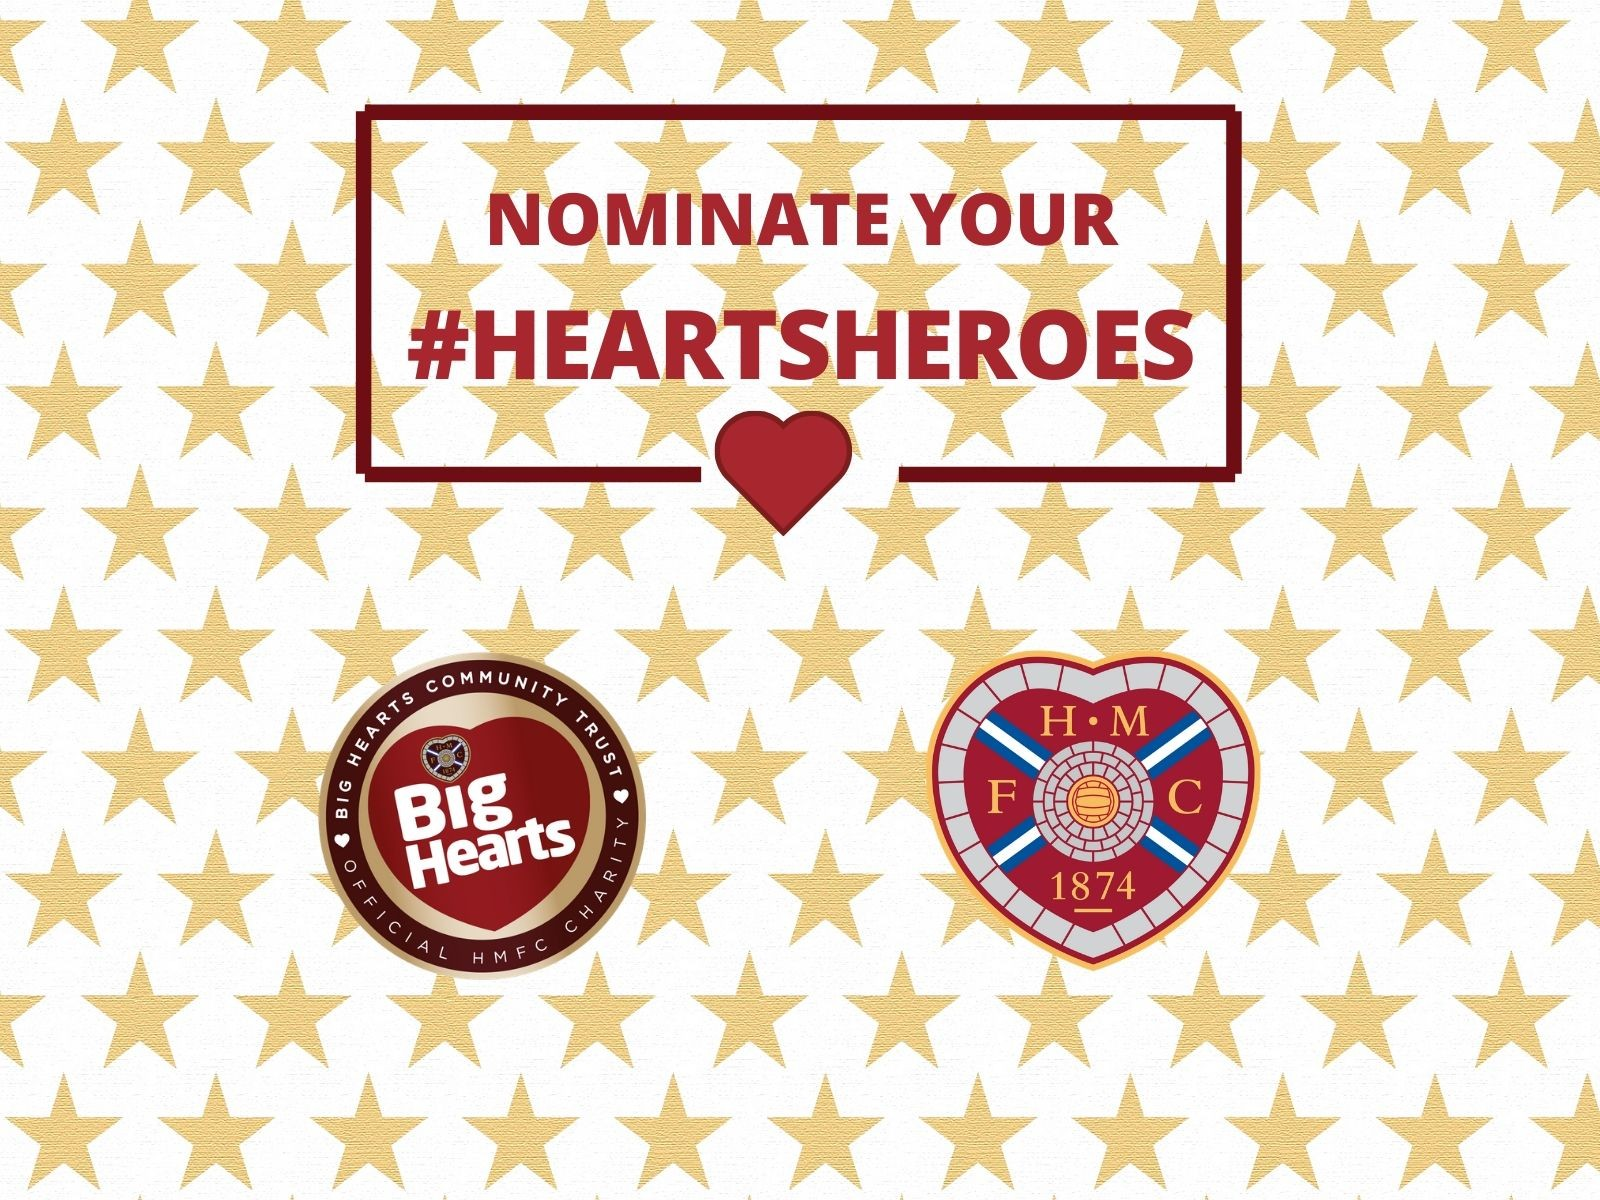 » Help us recognise the efforts from #HeartsHeroes during Covid-19!